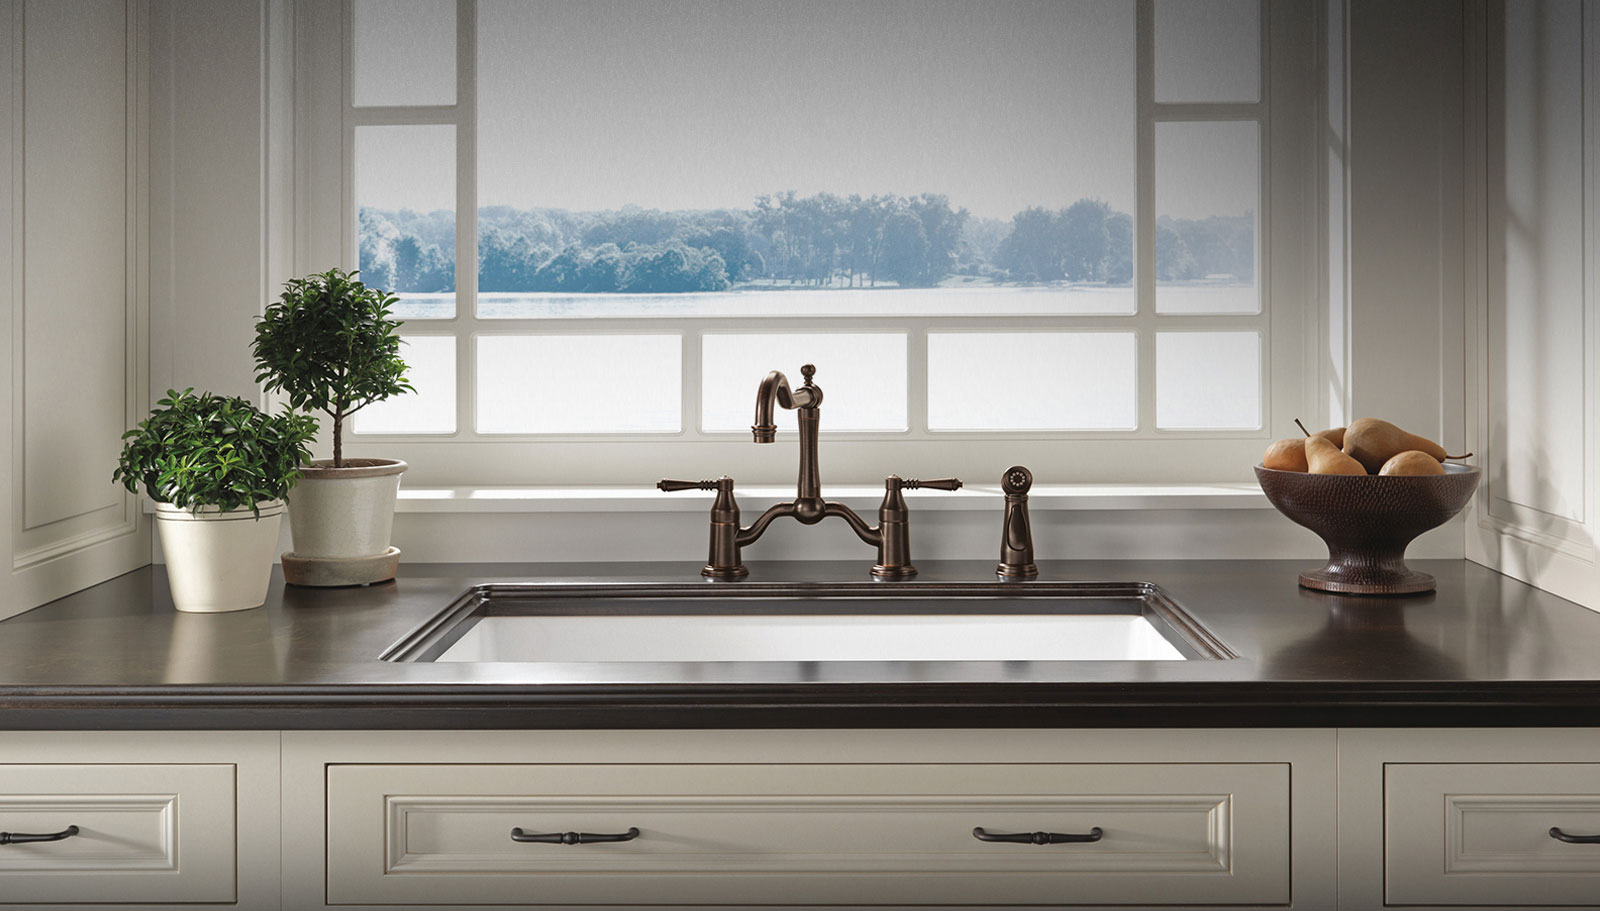 brizo faucets kitchen articulating faucet brizo kitchen faucets brizo rsvp designer kitchen faucets brizo shower brizo delta faucet company brizo faucet brizo faucets reviews high end kitc